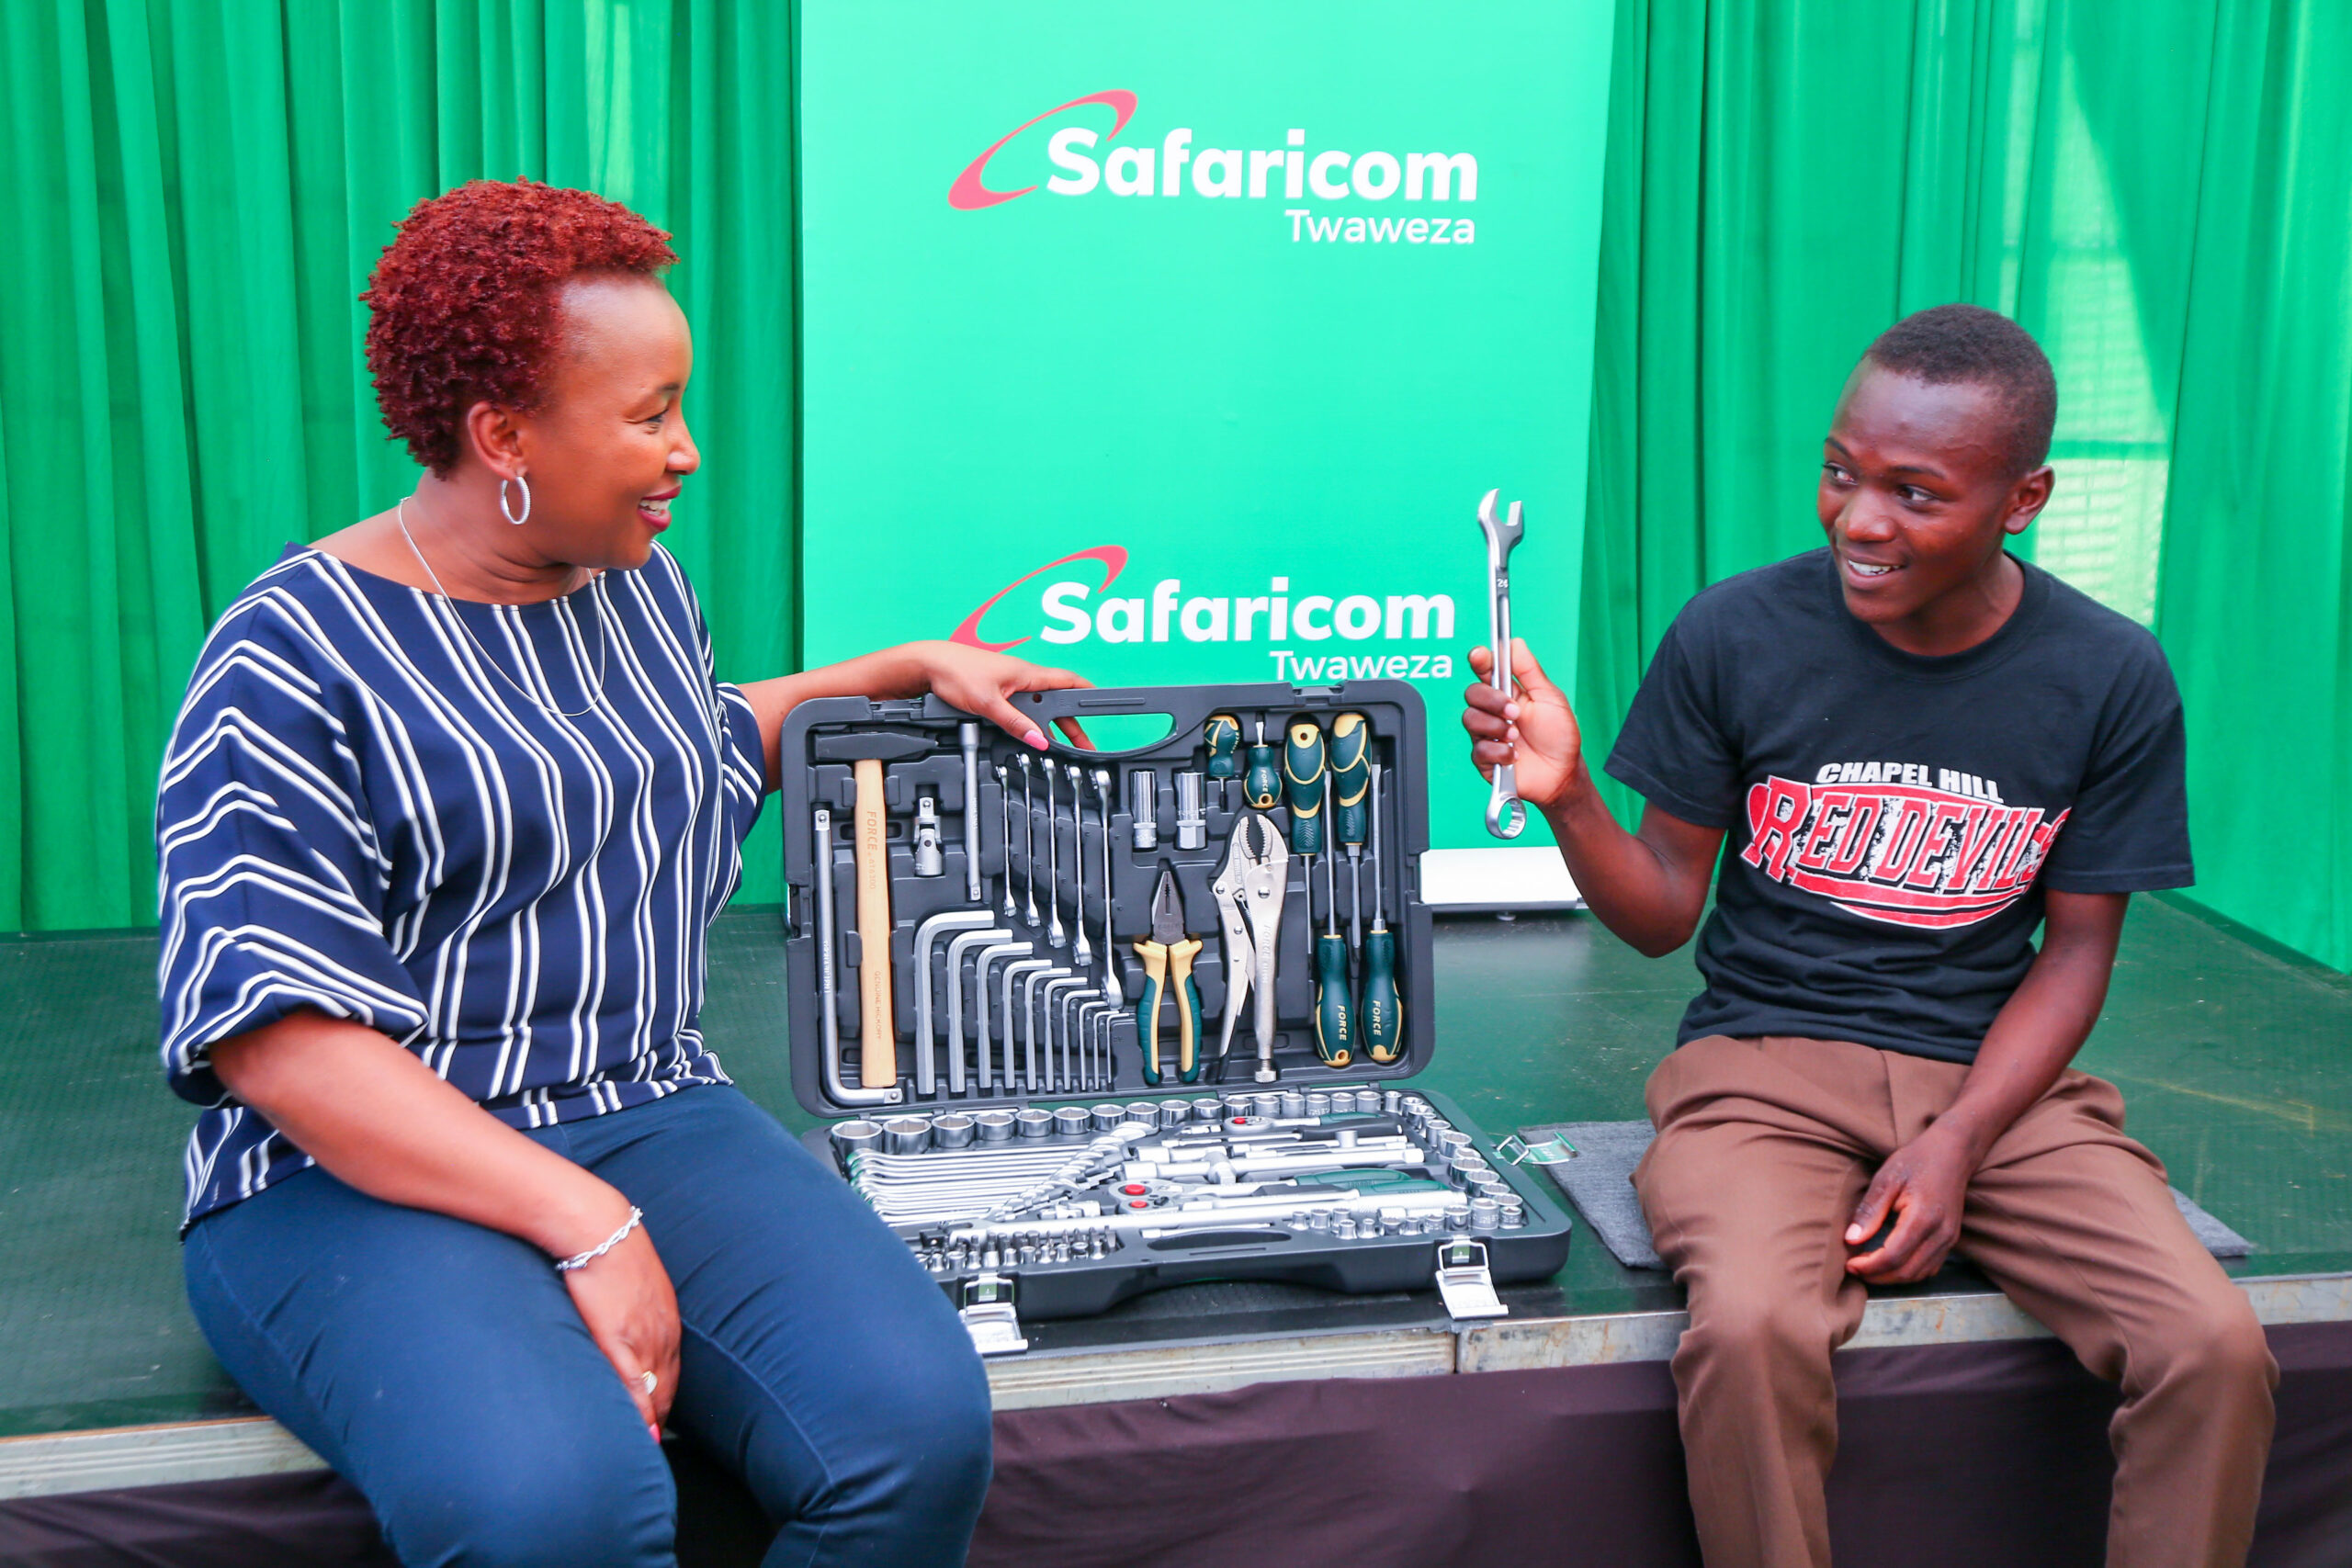 Safaricom issued with Operations License to Work in Ethiopia